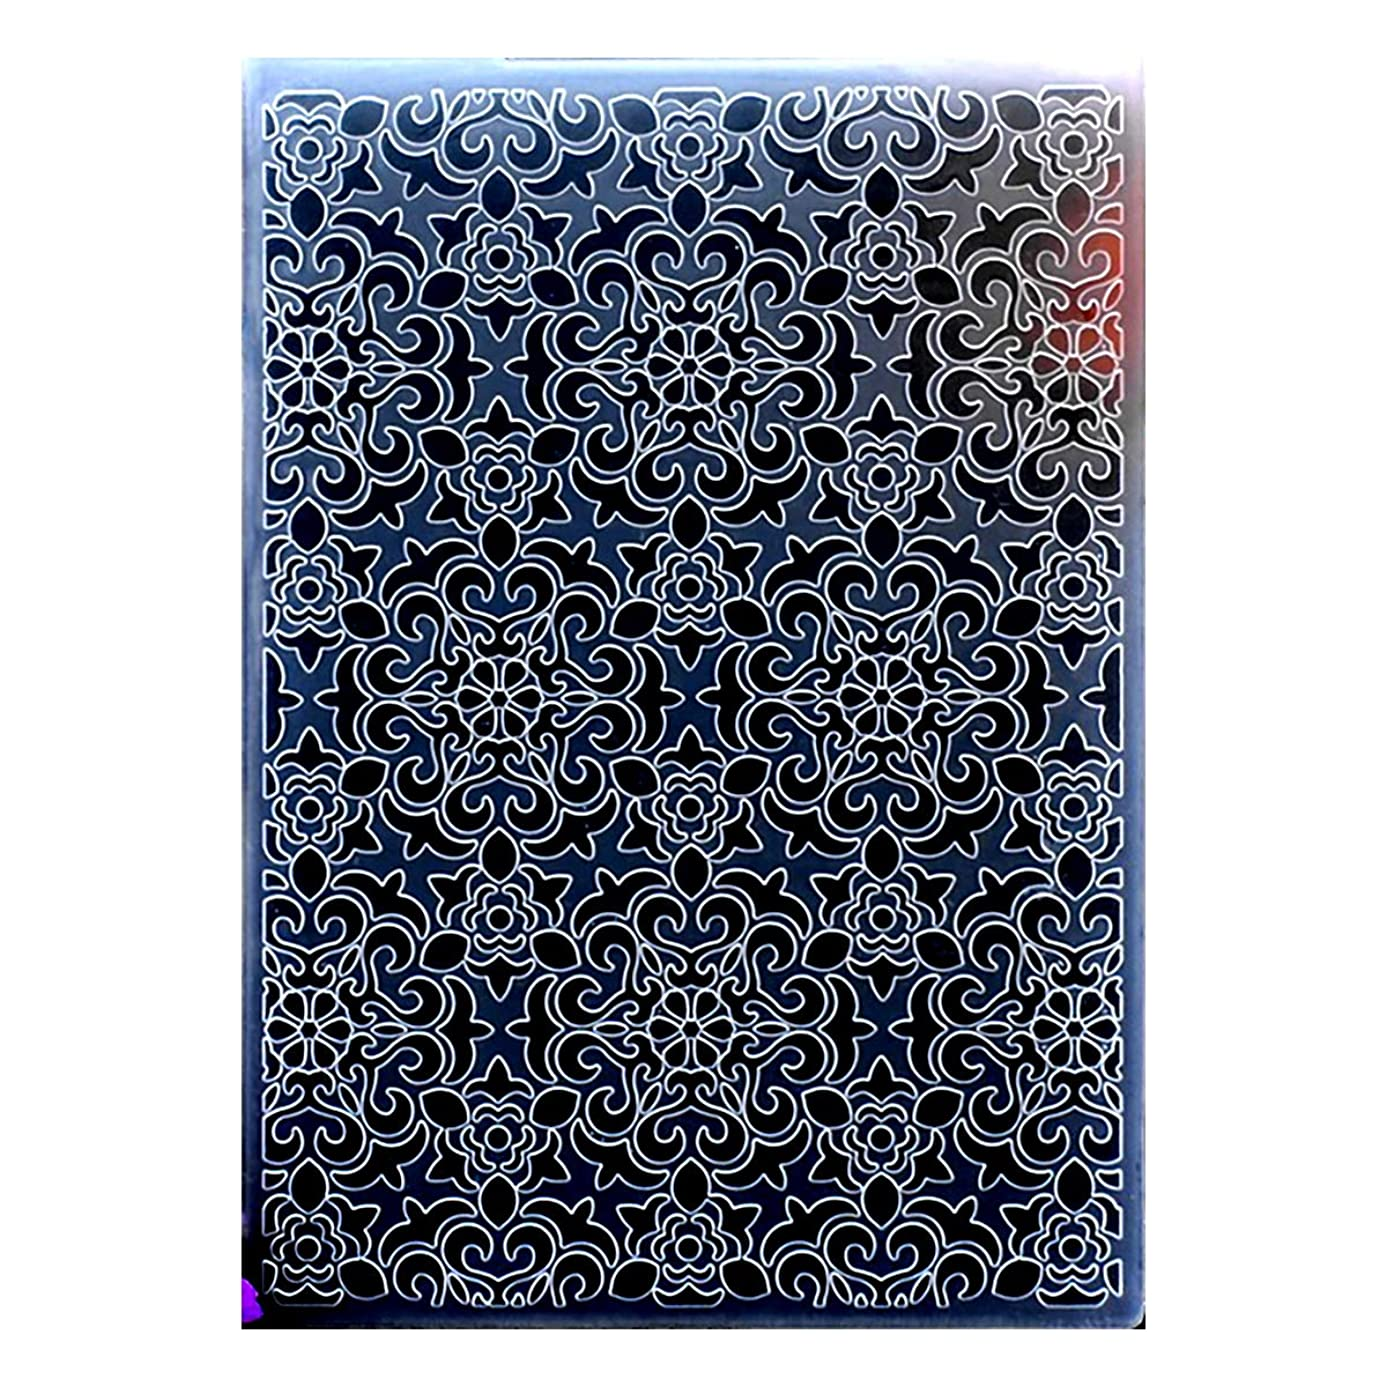 Kwan Crafts Flowers Plastic Embossing Folders for Card Making Scrapbooking and Other Paper Crafts, 12.5x17.7cm oxau1017436